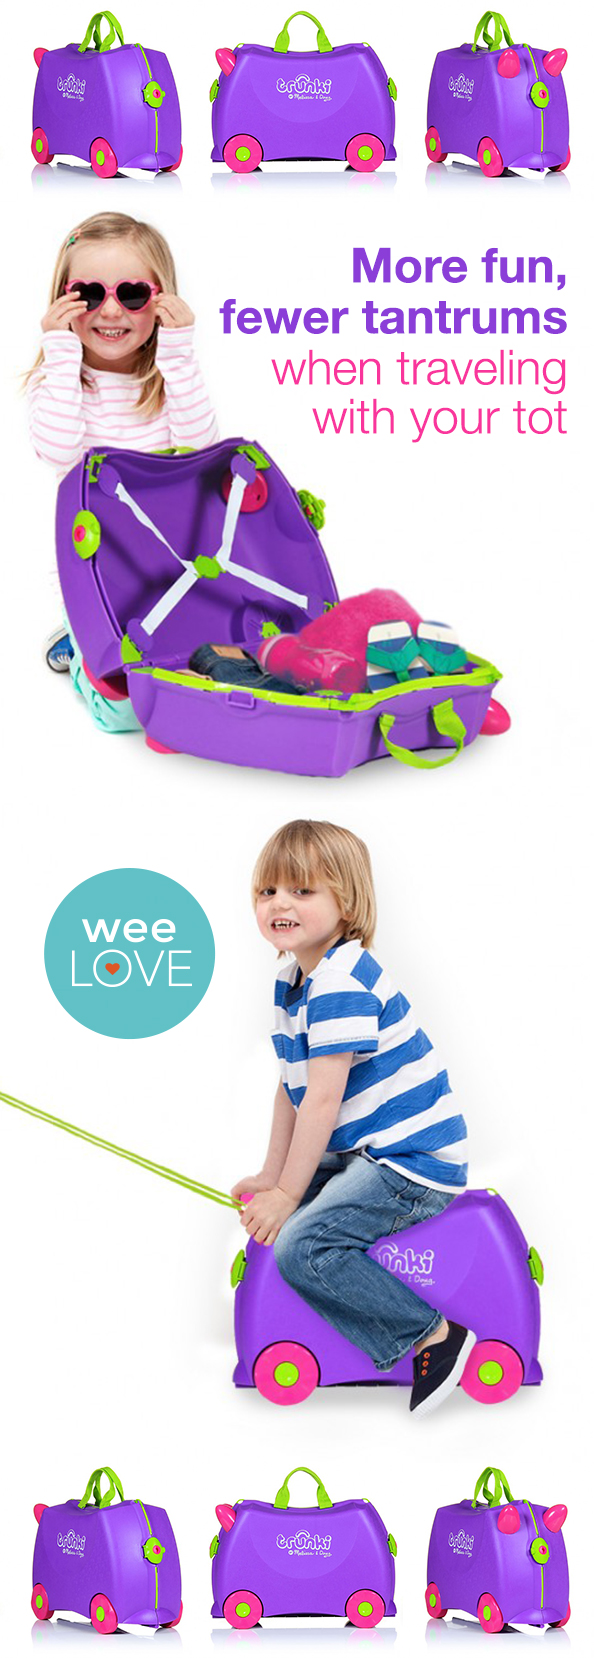 weelove_trunki_pin